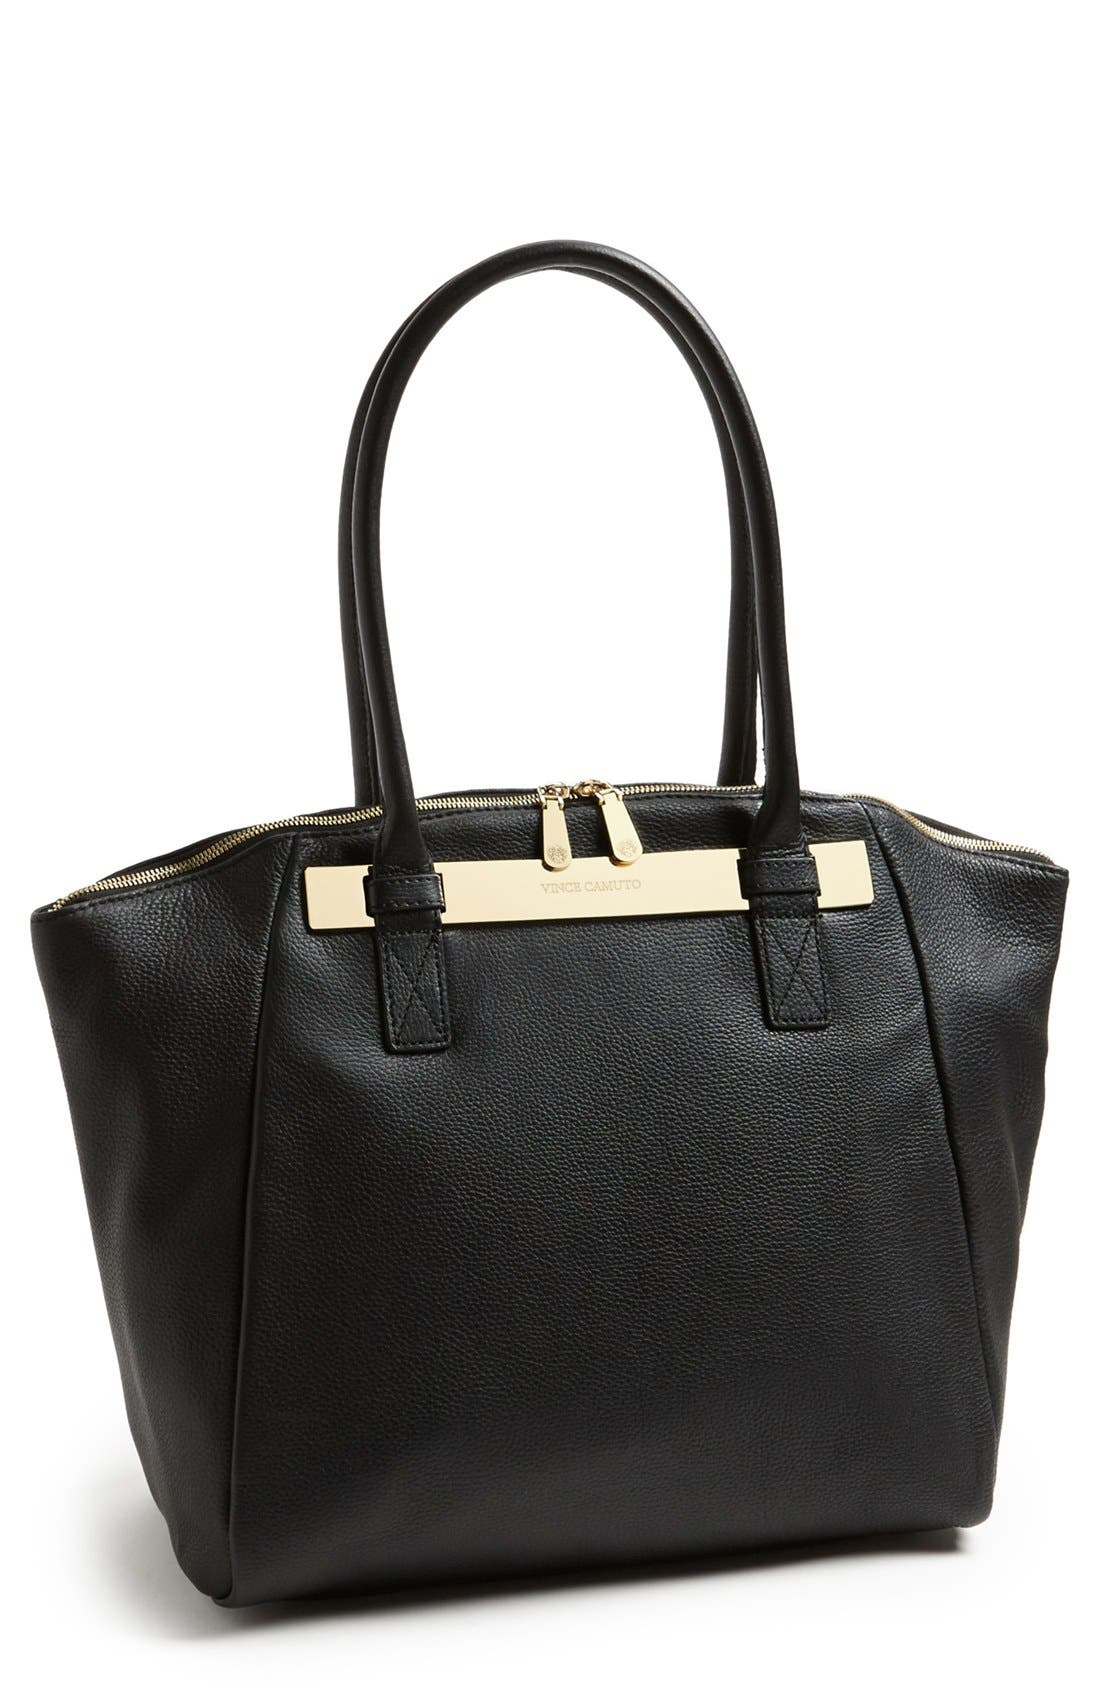 VINCE CAMUTO, 'Jace' Leather Tote, Main thumbnail 1, color, 002